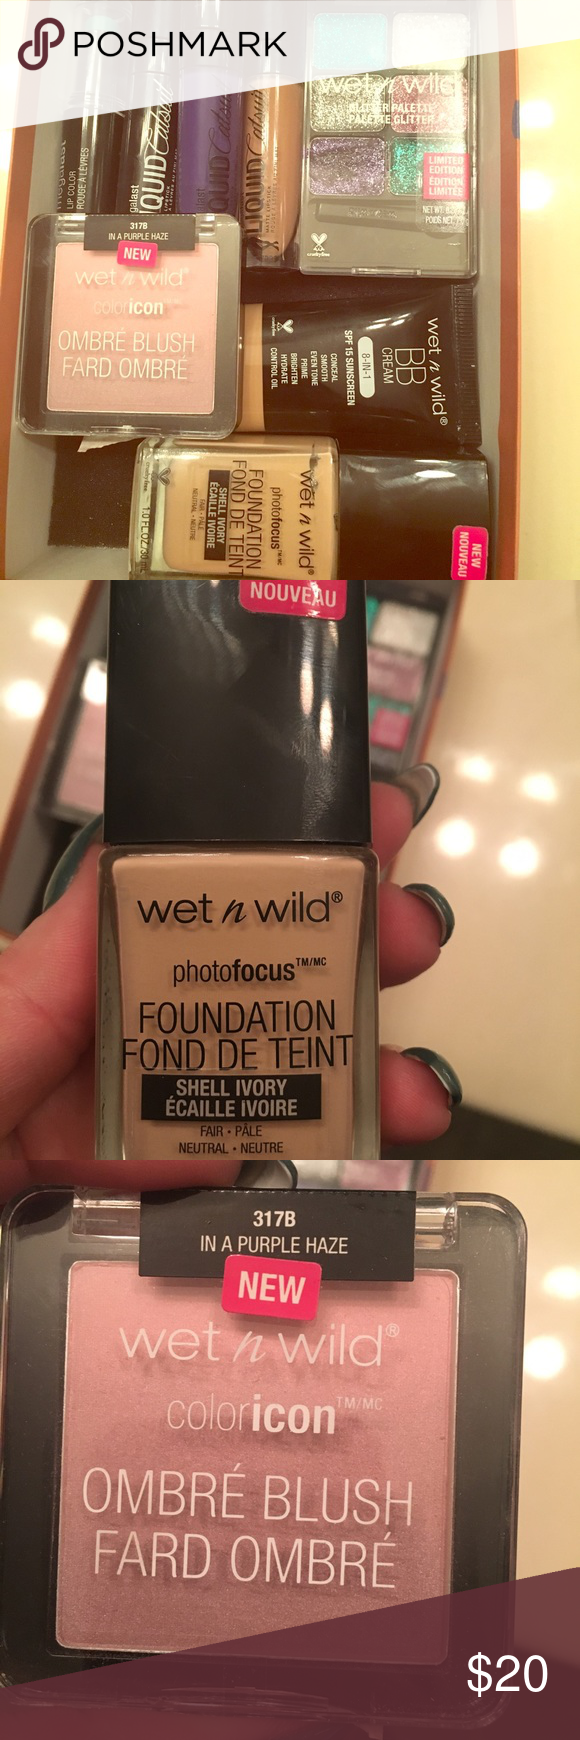 Wet N Wild Make Up Bundle Pinterest Photo Focus Bermuda Moodmatcher Liquid Matte Just Blush All Products Used Only Once Foundation